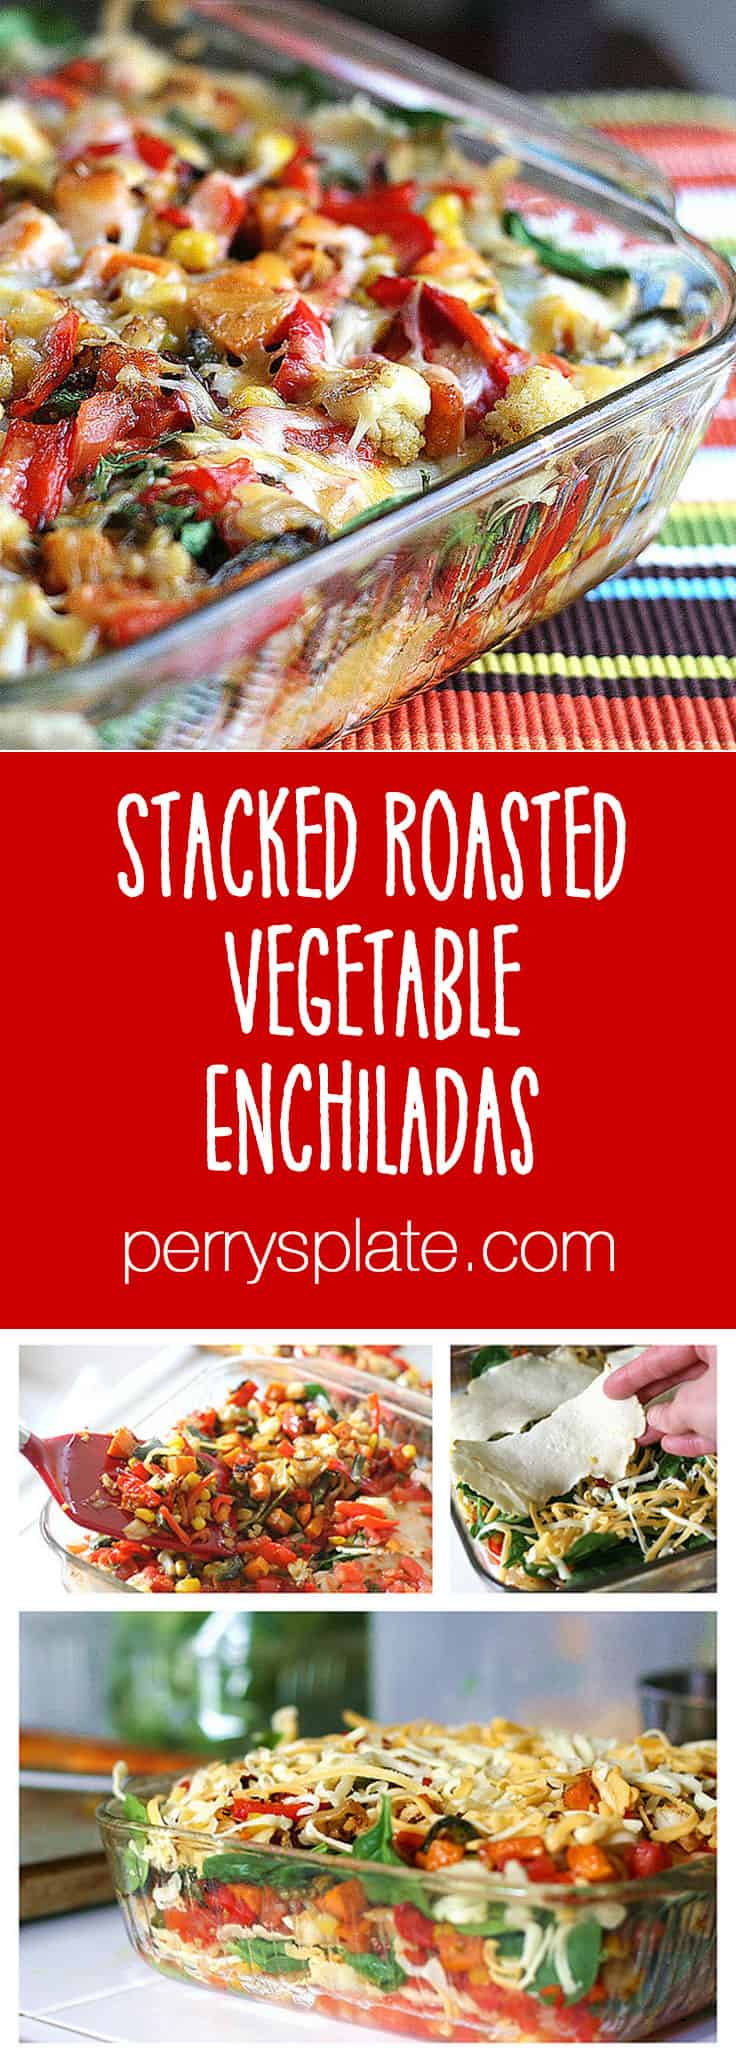 Stacked Roasted Vegetable Enchiladas | vegetarian recipes | roasted vegetables | enchilada recipes | tex-mex recipes | gluten-free recipes | perrysplate.com